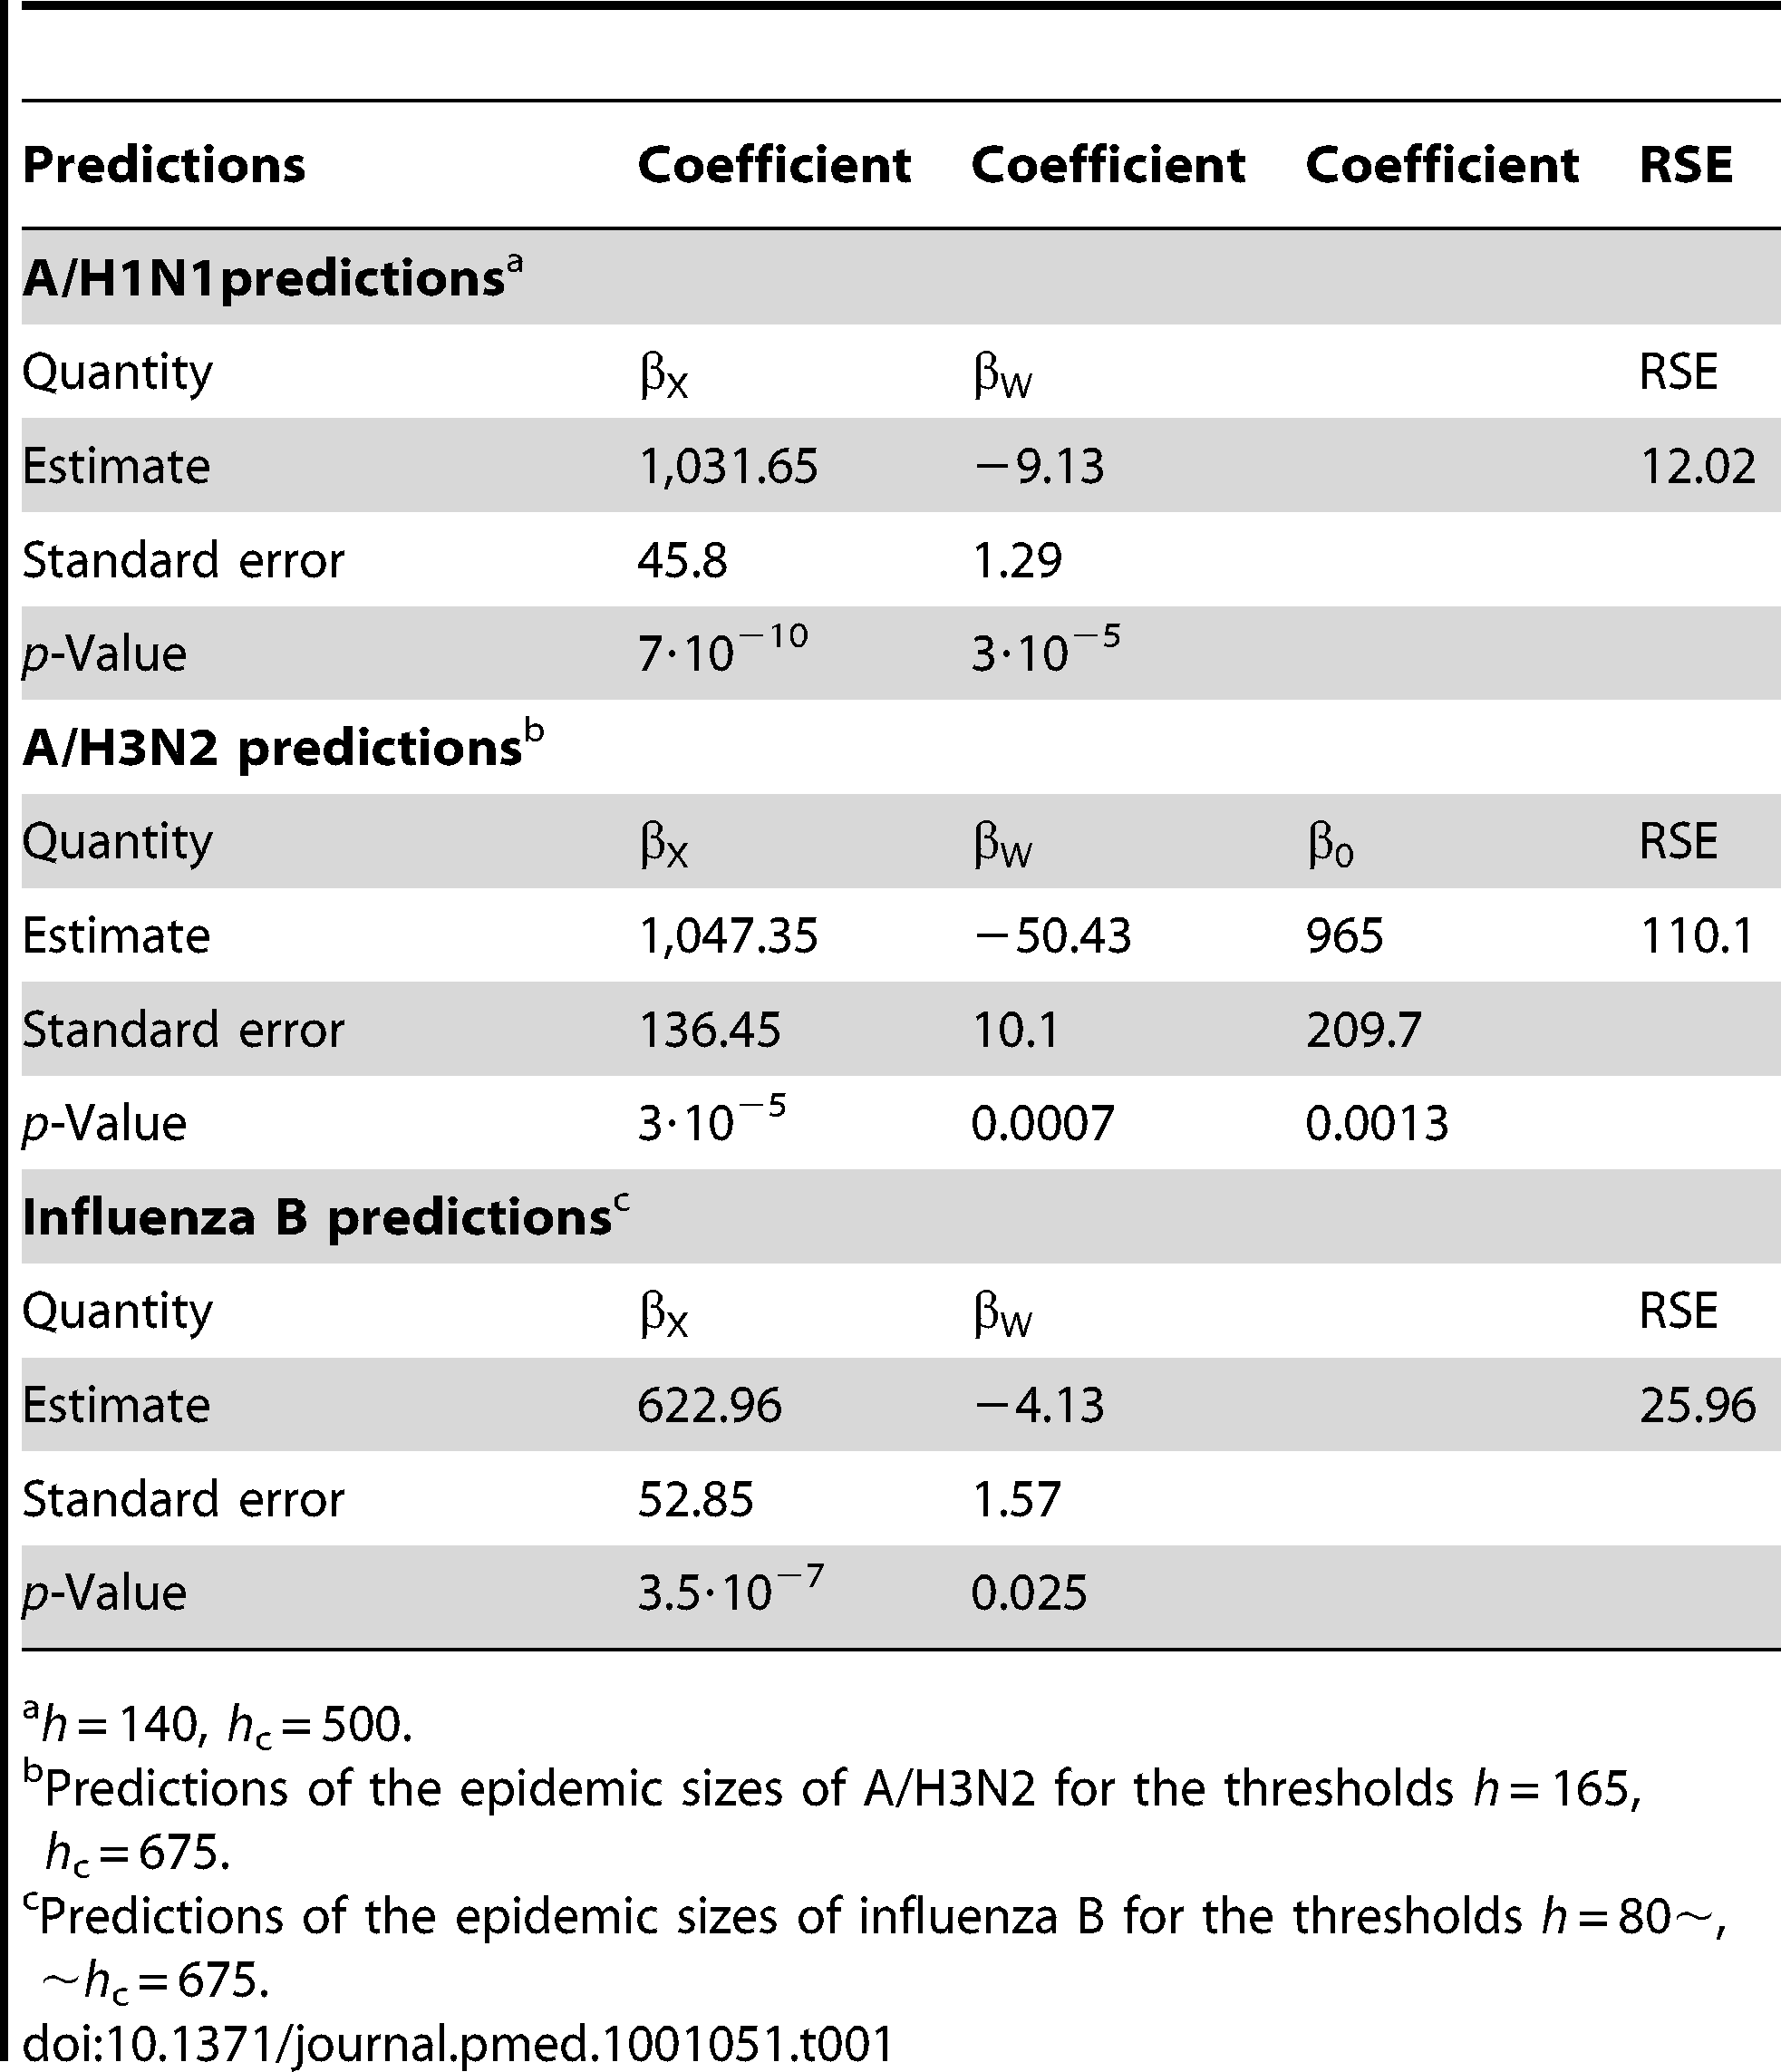 Predictions of the epidemic sizes of A/H1N1 for the thresholds.